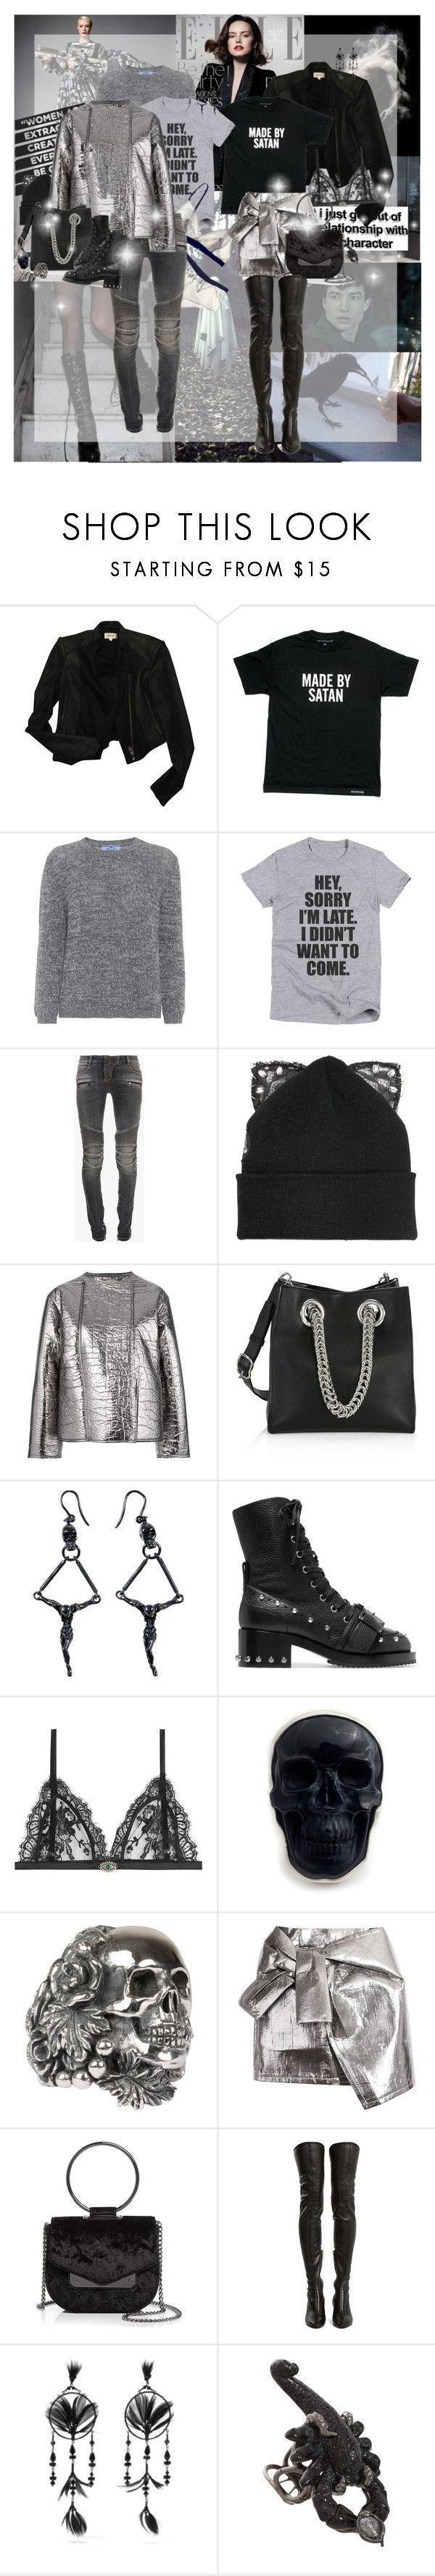 """""""Shades of Grey: Love the Color. Hate the Movie"""" by lady-redrise ❤ liked on Polyvore featuring Helmut Lang, Prada, Balmain, Silver Spoon Attire, Nehera, Alexander Wang, Delfina Delettrez, N°21, Alexander McQueen and Ugo Cacciatori"""